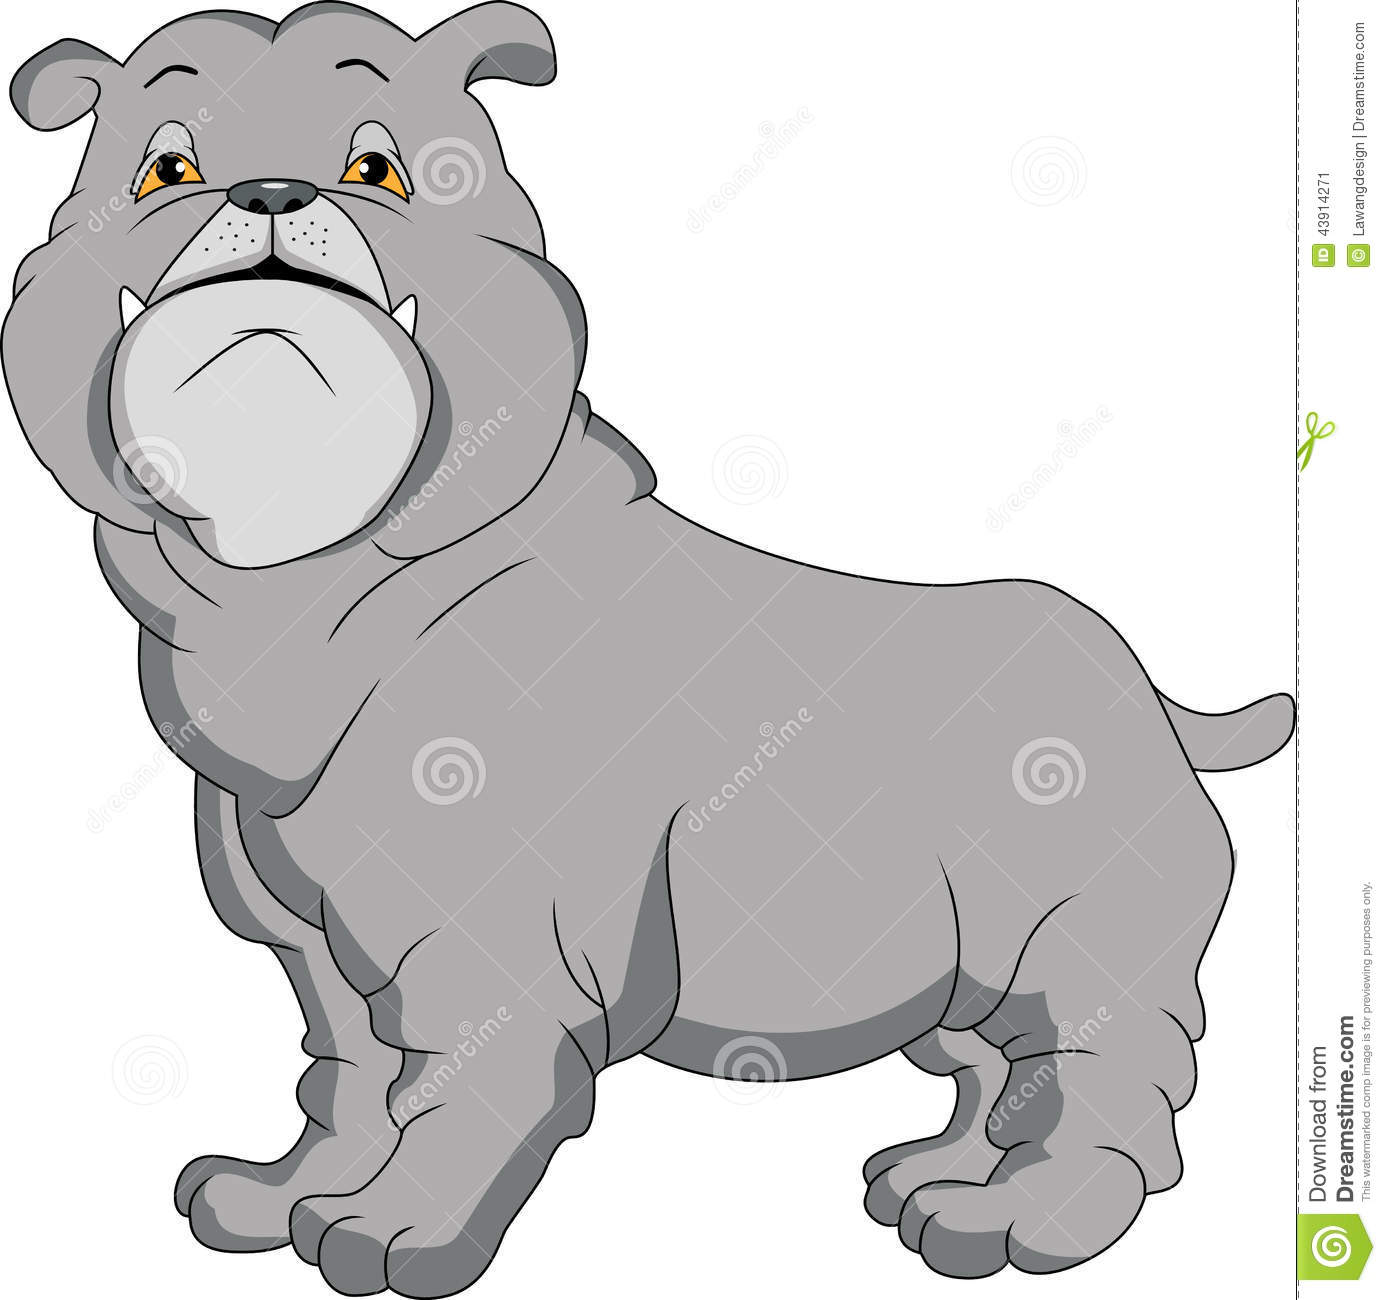 Cute english bulldog cartoon - photo#25